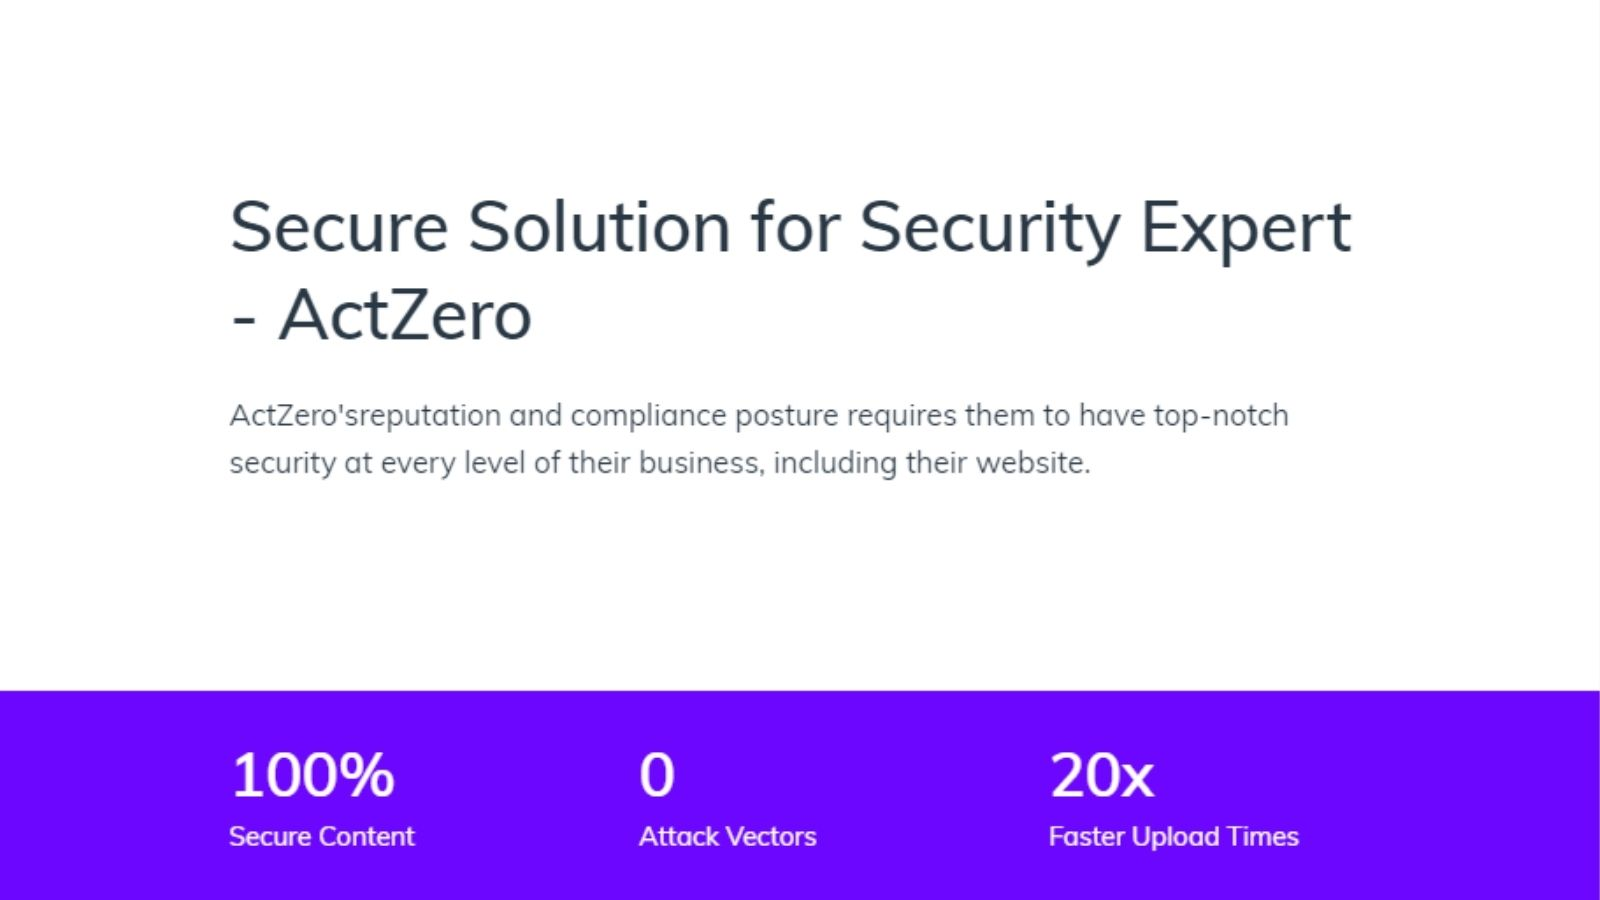 Secure Solution for Security Expert - ActZero